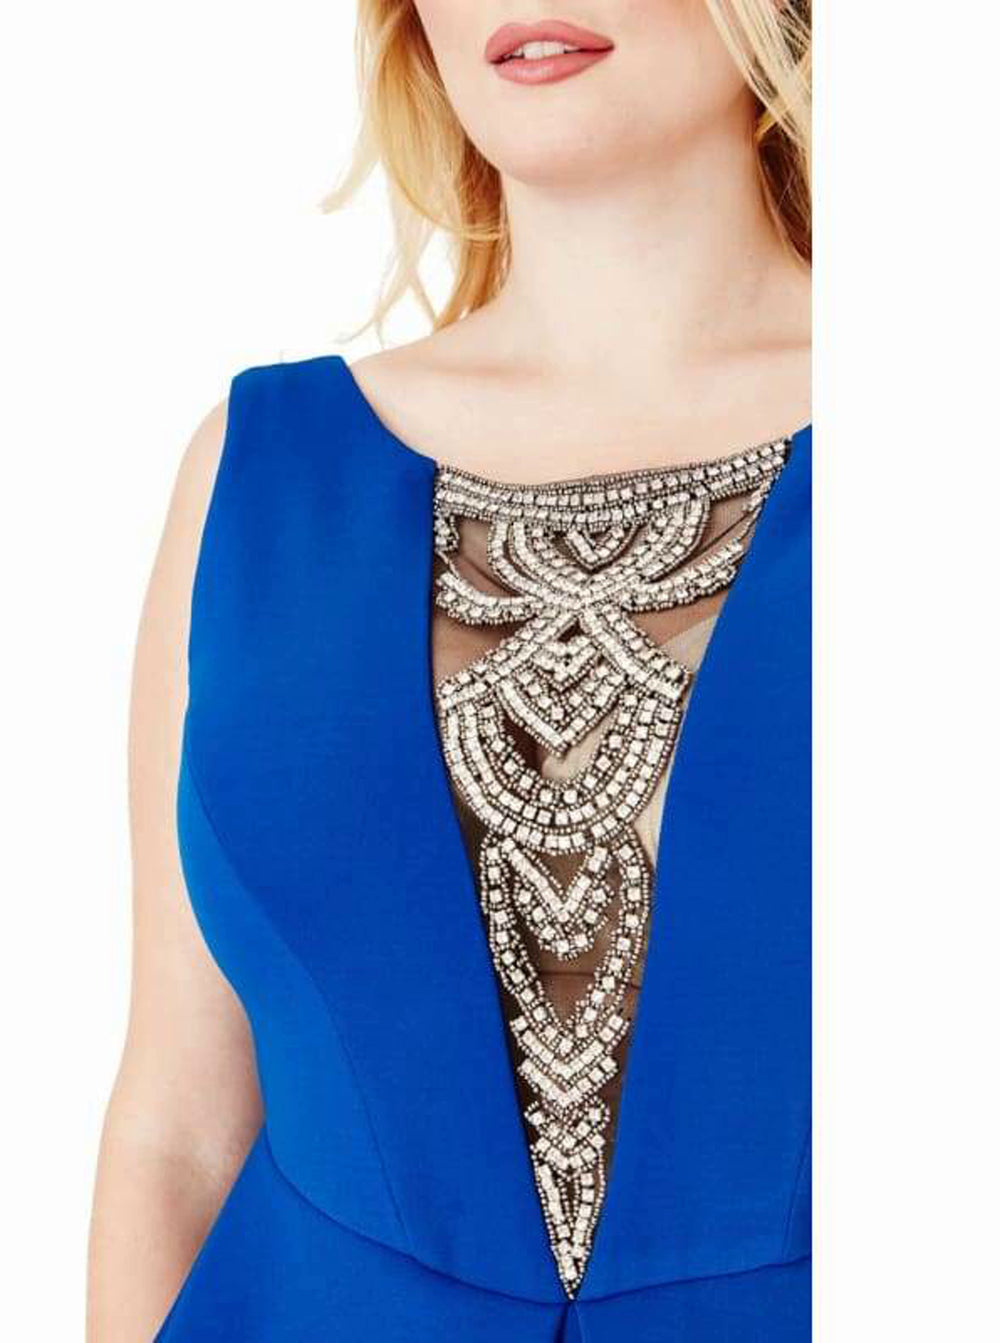 Plus Size Embellished Neckline Maxi Dress - 18 / Royal Blue - Plus Size Dresses blue dress blue maxi dress blue peplum dress dresses dresses